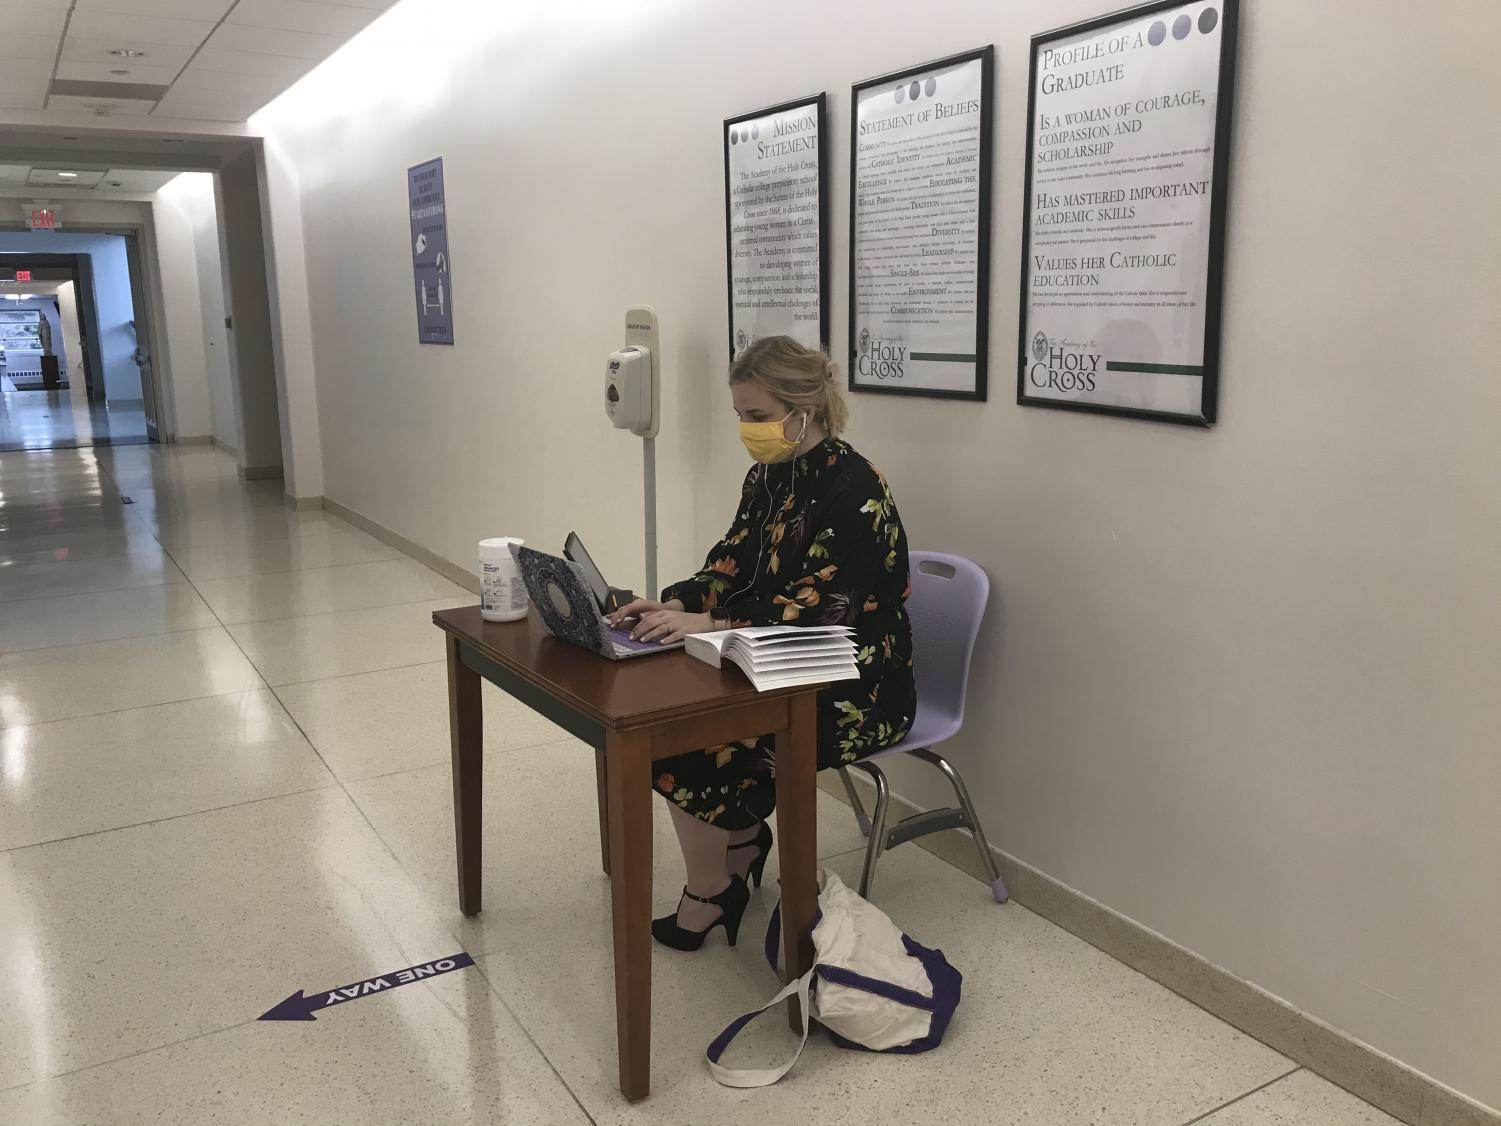 Latin teacher Rachel Mullervy seated outside an upstairs bathroom to make sure students do not exceed the limit of people in it.